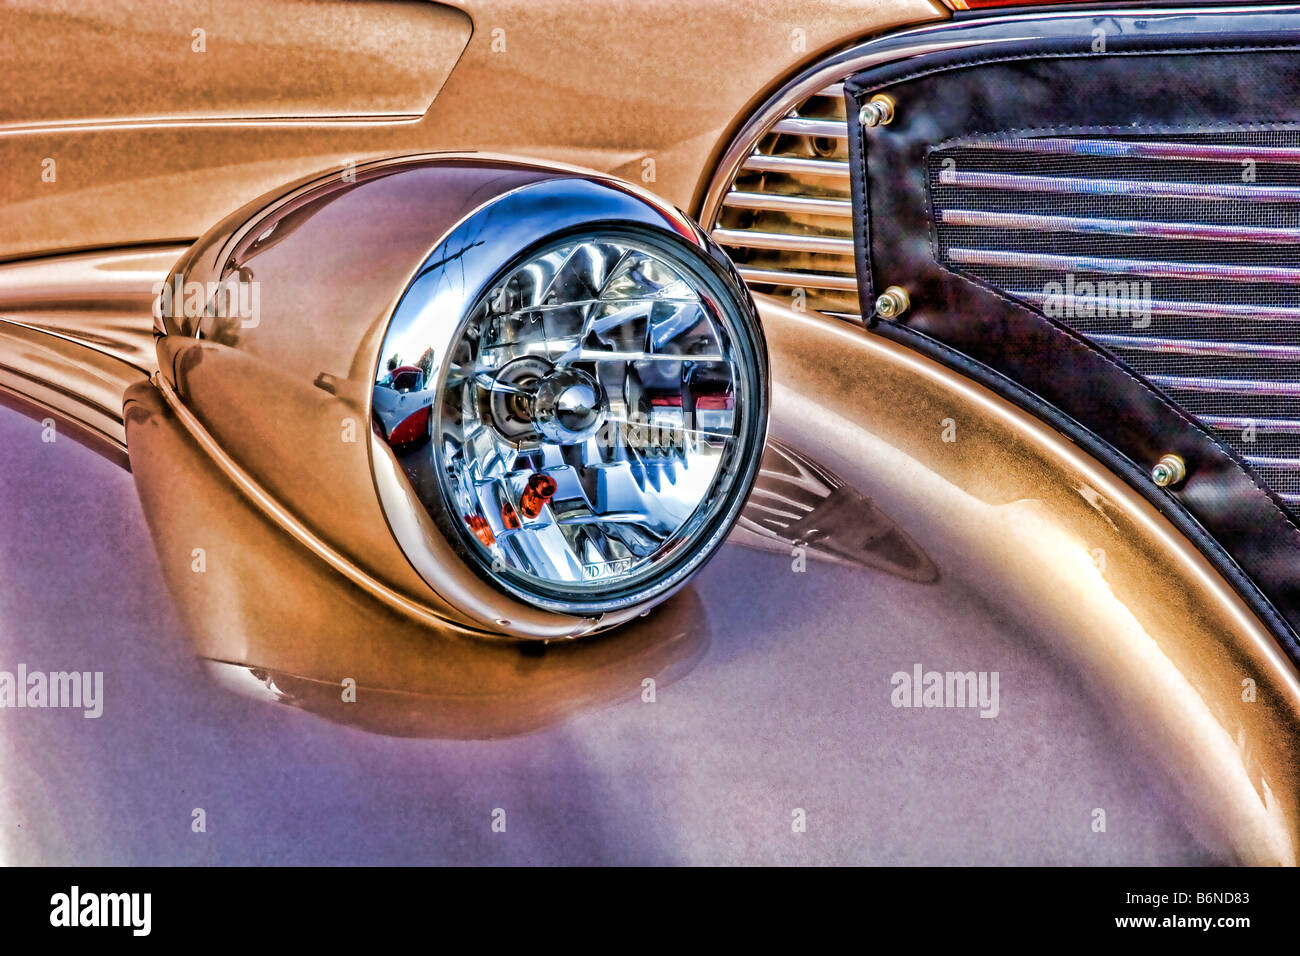 Photo illustration painterly effect of antique car. - Stock Image